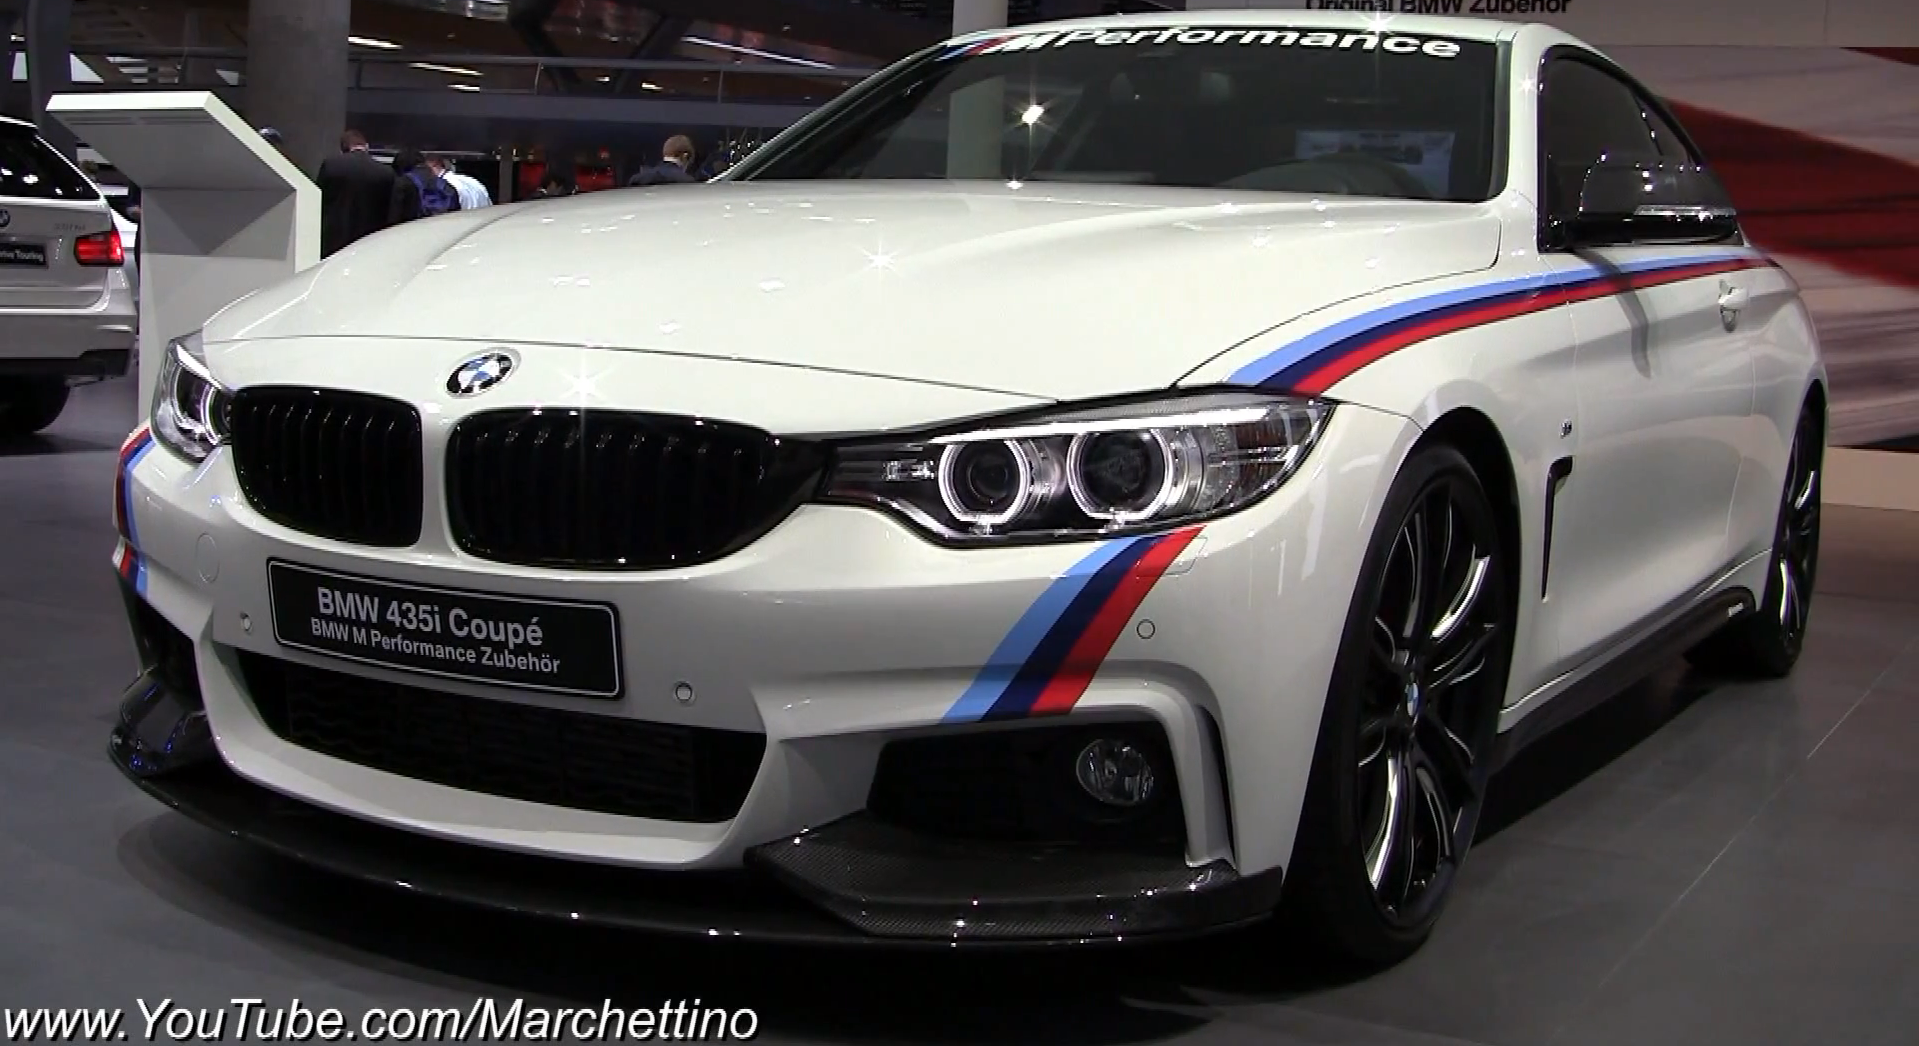 2014 bmw 435i m performance walkaround at 2013 iaa. Black Bedroom Furniture Sets. Home Design Ideas